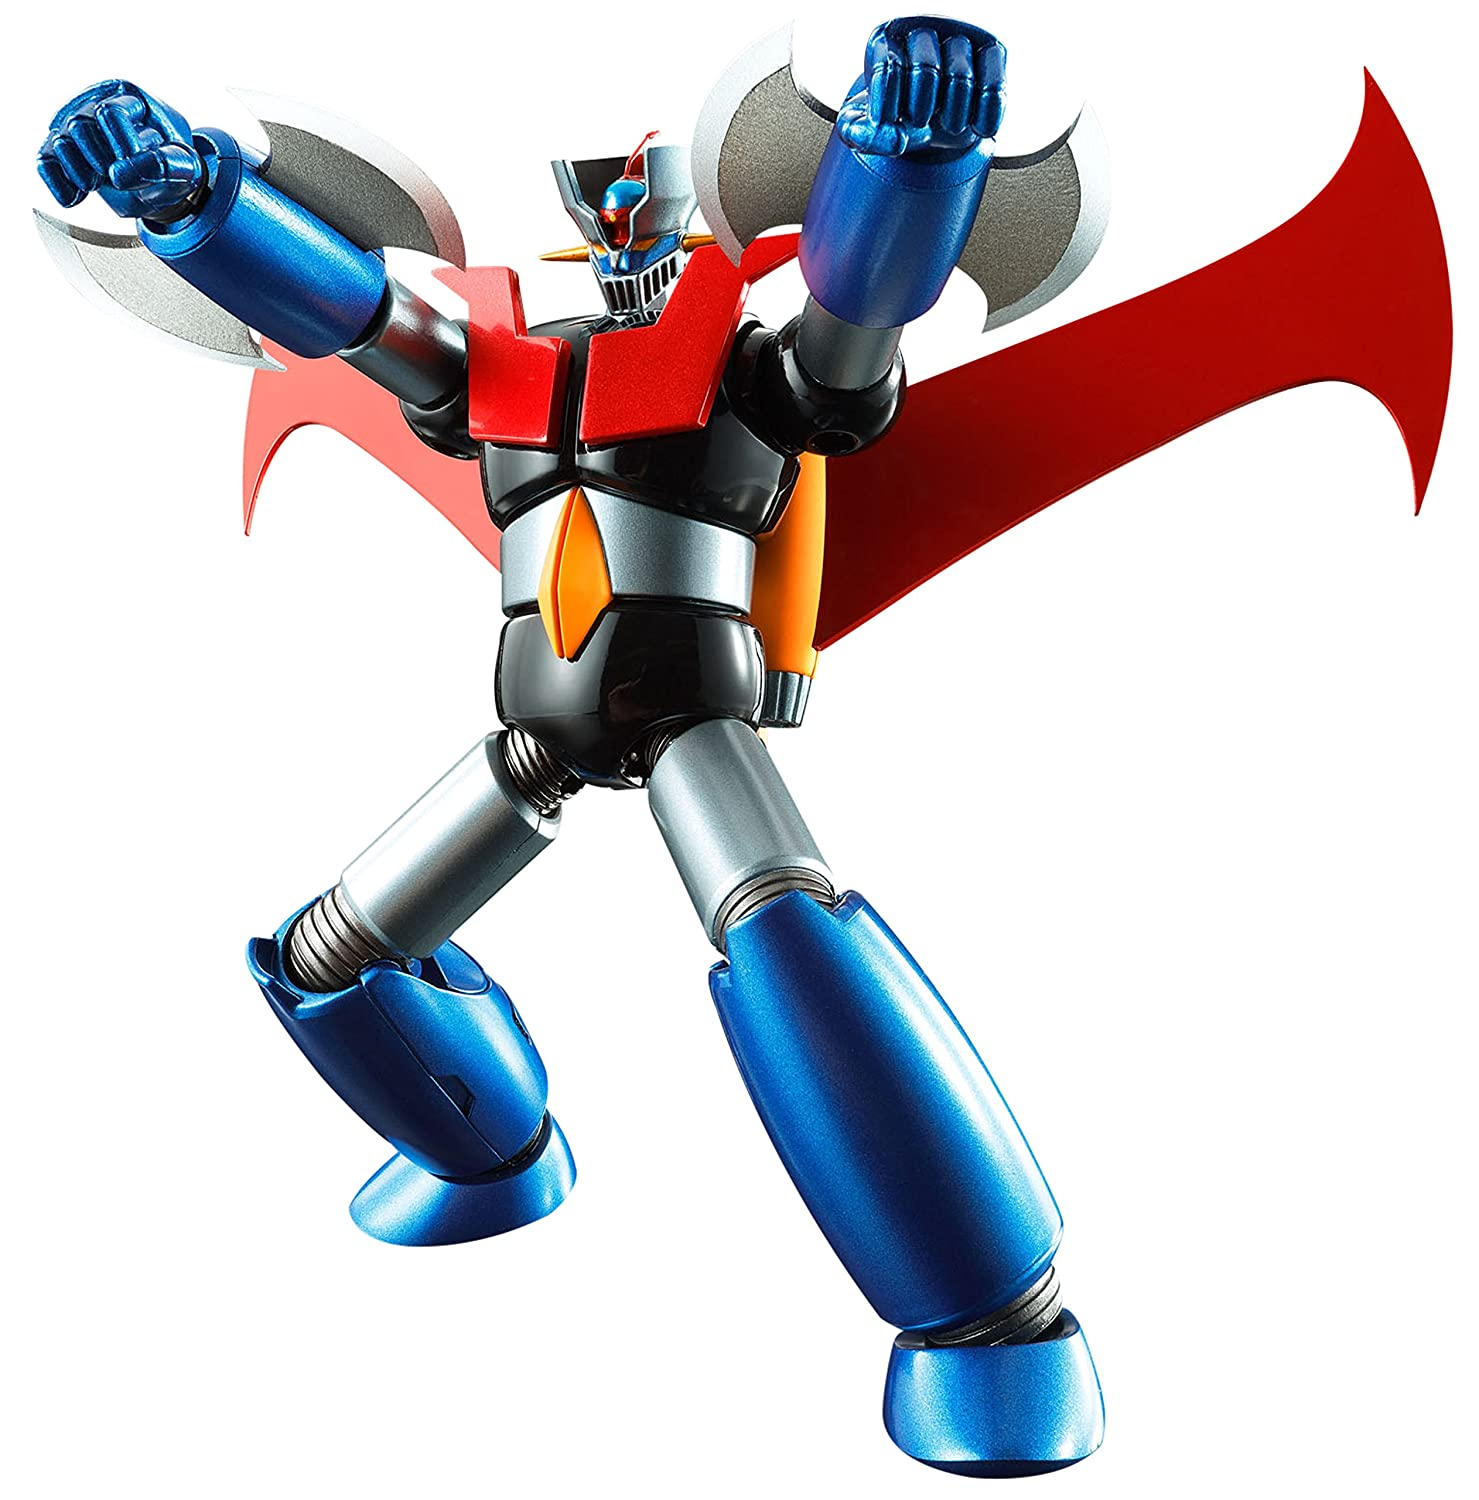 Mazinger z coloring pages - Amazon Com Bandai Hobby Super Robot Chogokin Mazinger Z Iron Cutter Edition Mazinger Action Figure Toys Games